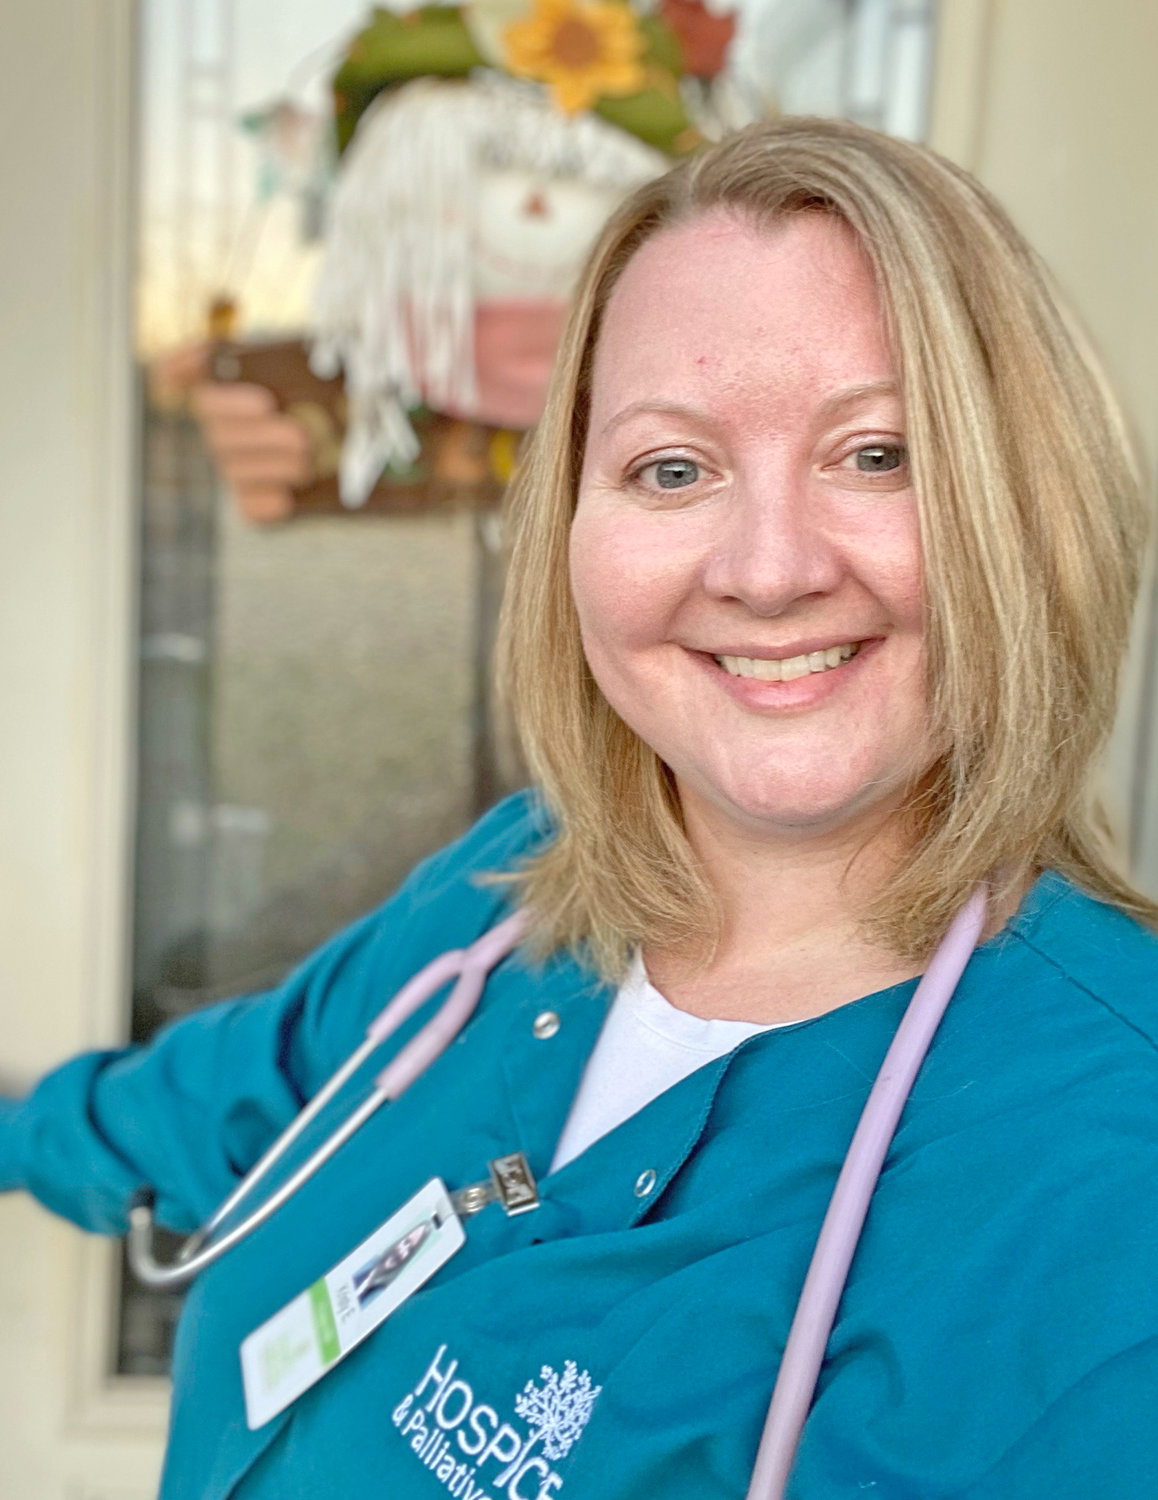 Hospice care 'comes from the heart'.